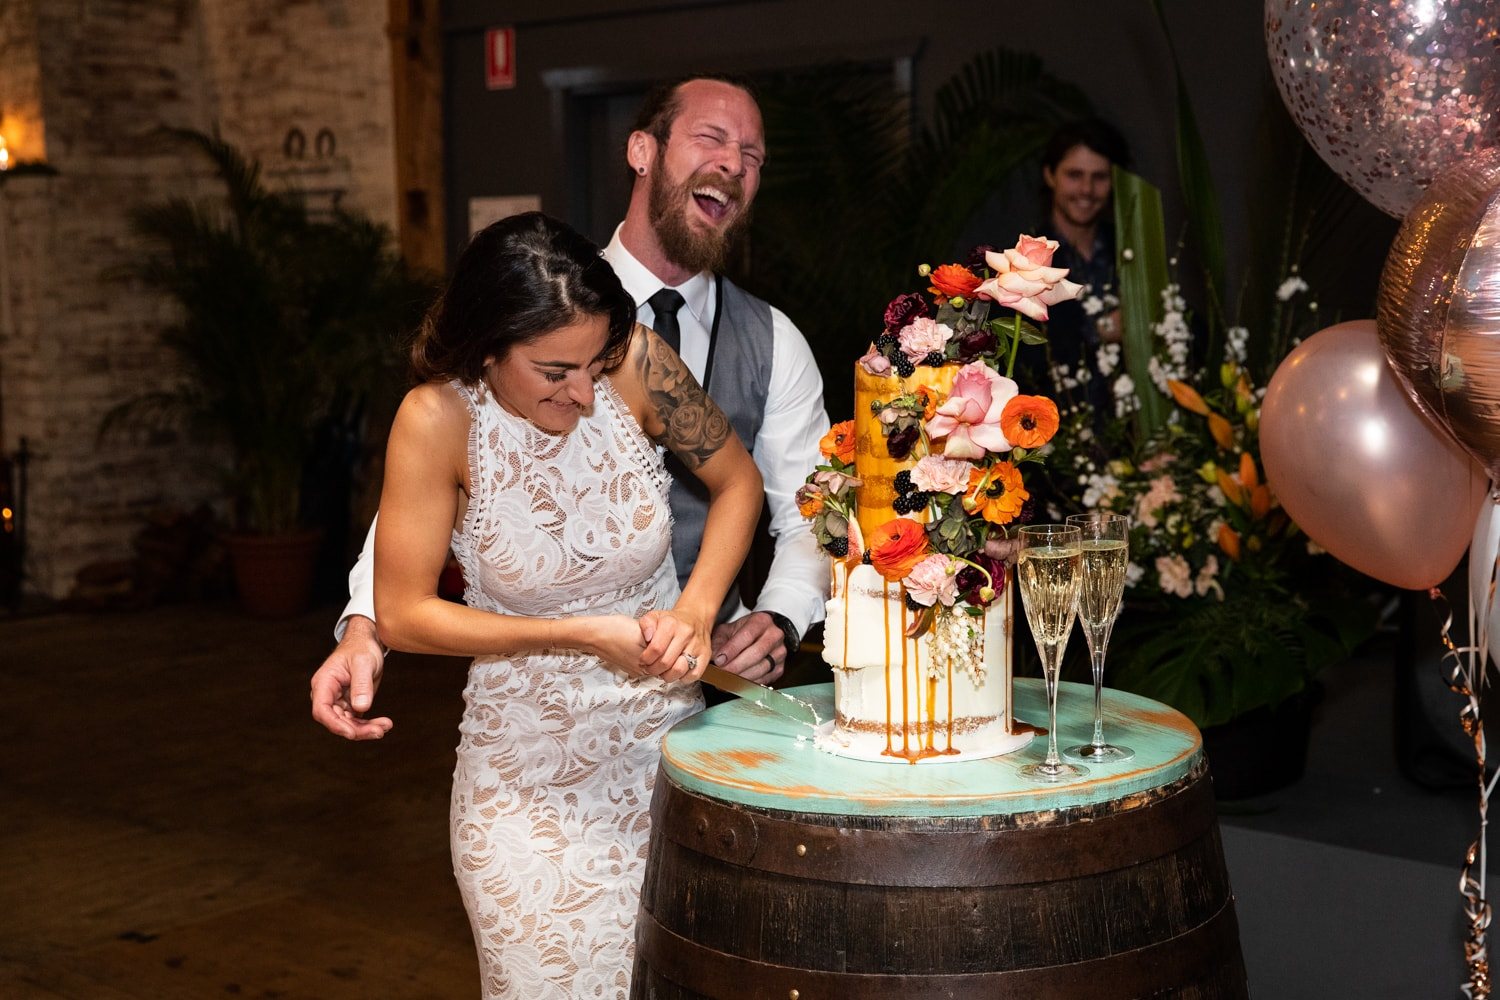 cake cutting - wedding day timeline